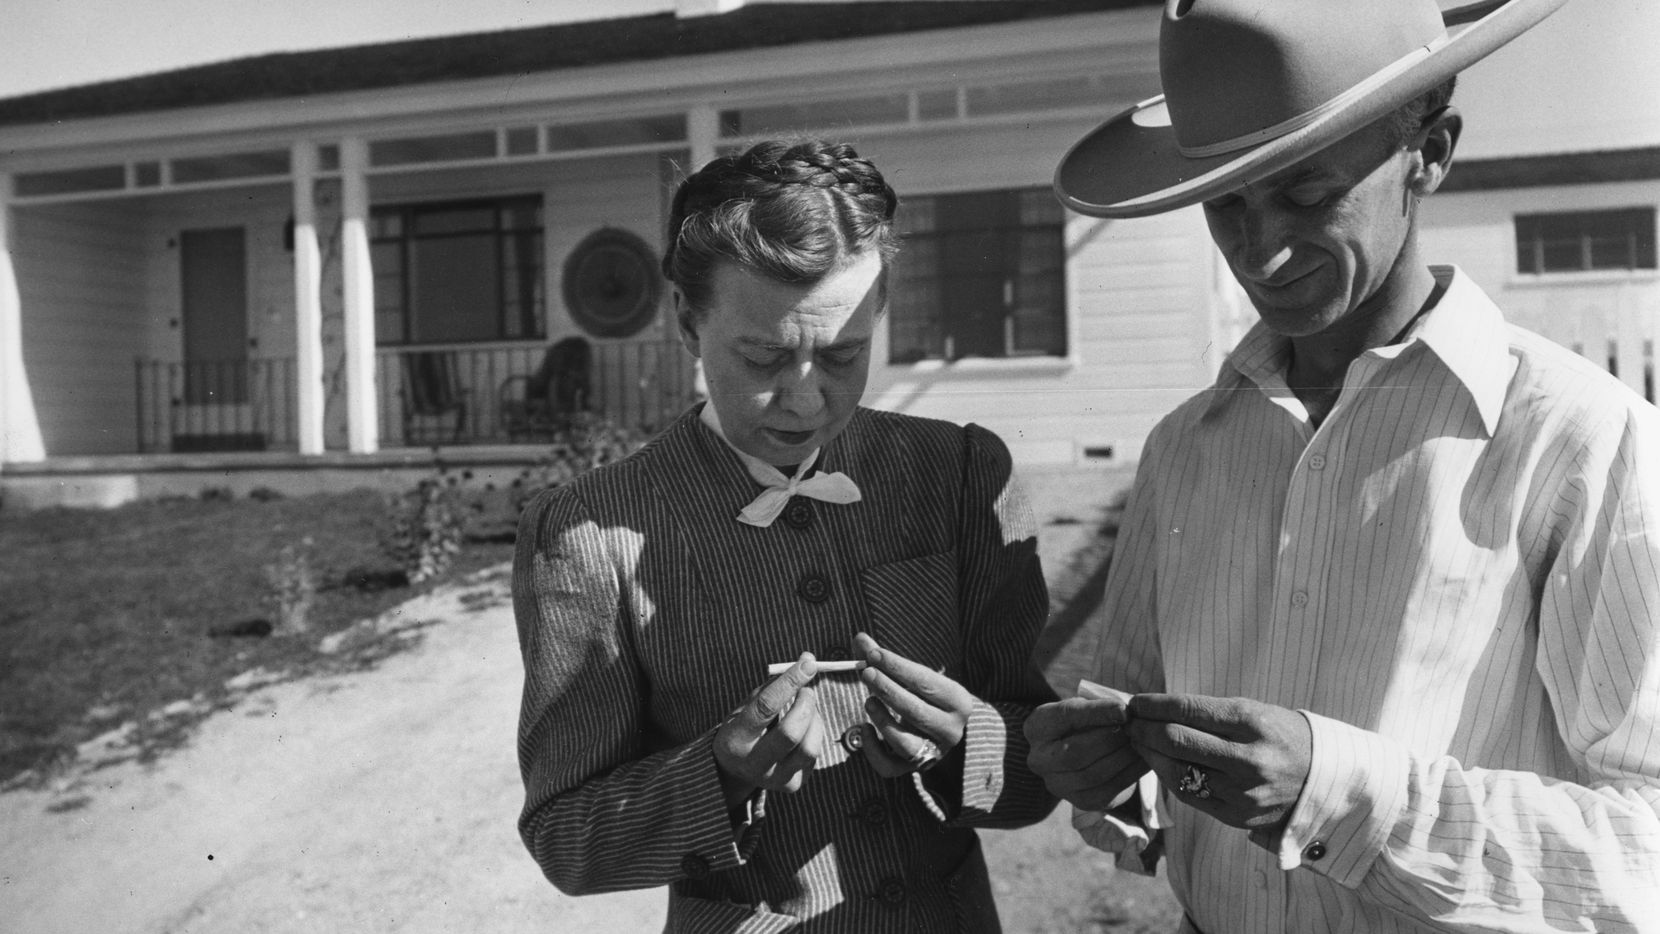 Jerry (left) and Ernie Pyle rolling cigarettes in front of their home. Ernie was home on a rare break as a war columnist during World War II. 1944. Courtesy of the Palace of the Governors Photo Archives, 183255.